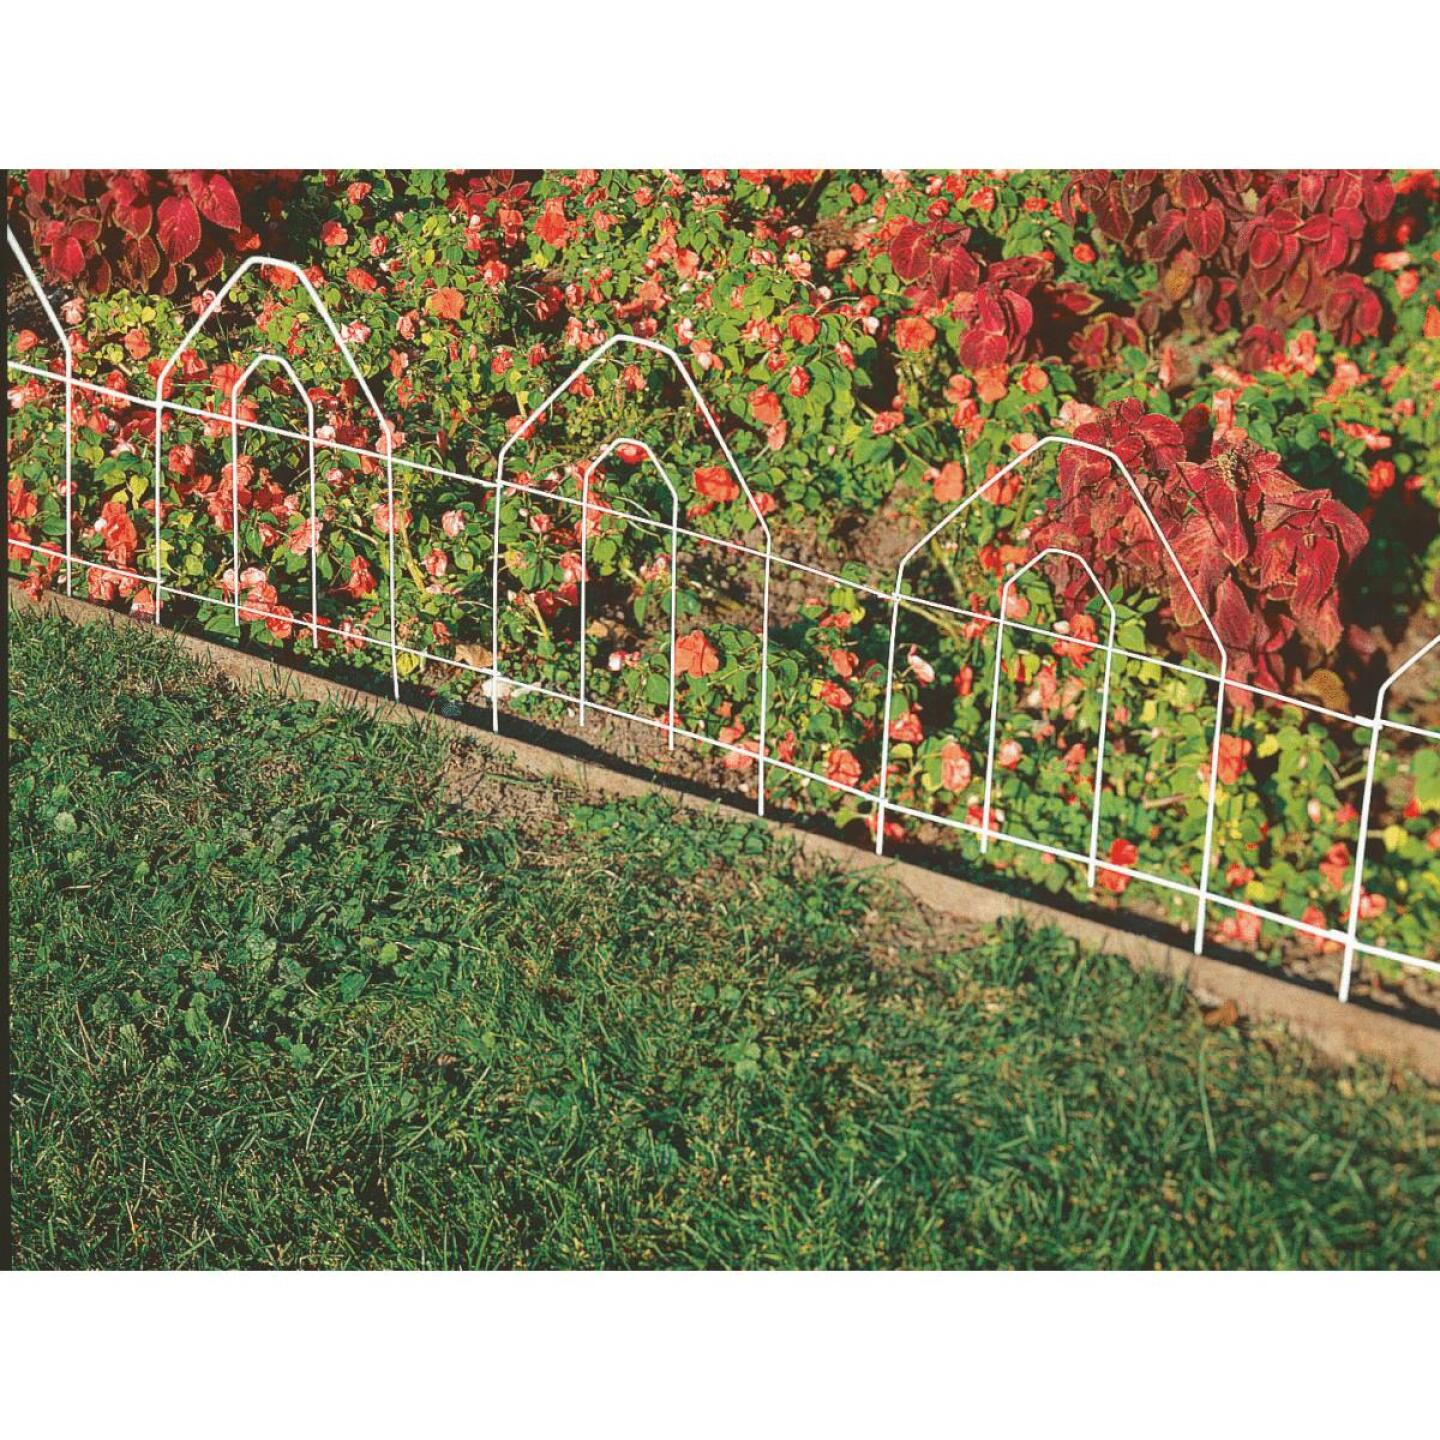 Best Garden 8 Ft. White Galvanized Wire Folding Fence Image 2